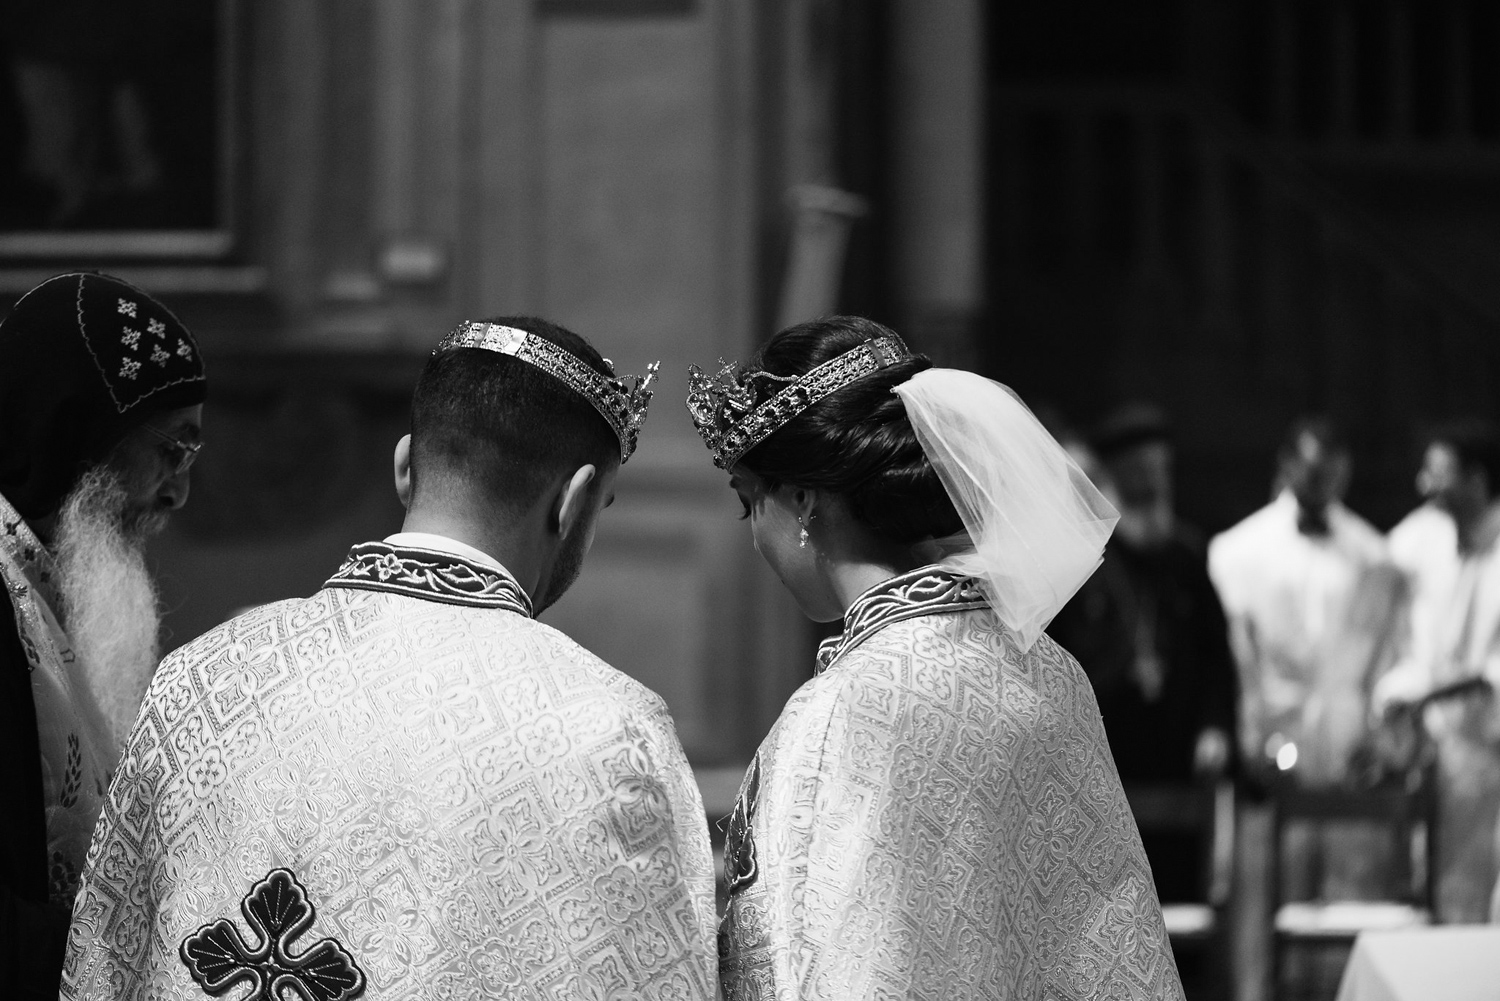 katie_mitchell_wedding_florence_tuscany_villa_di_miano_wedding_photography_27.jpg